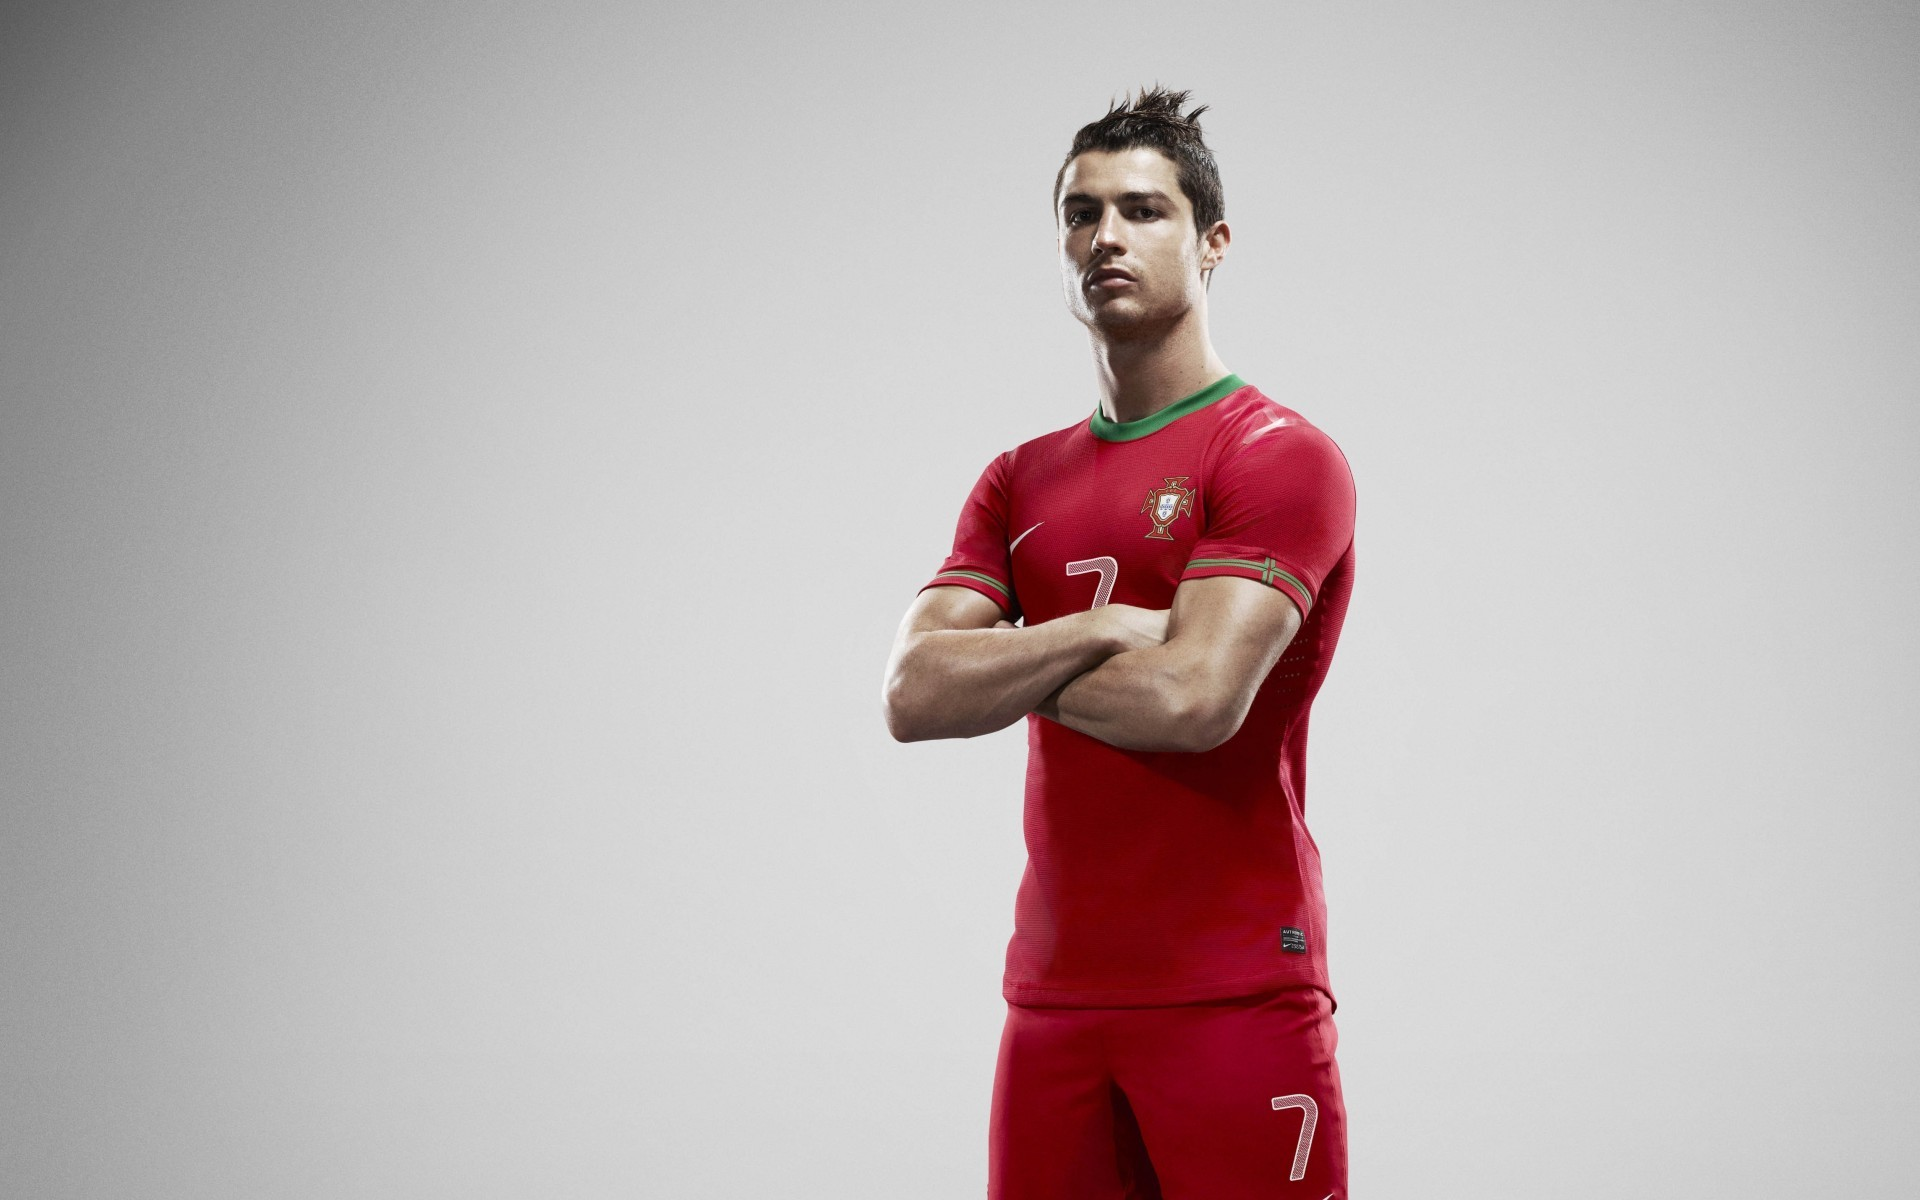 1920x1200 Cristiano Ronaldo, Portugal HD Wallpapers Download -  http://wallucky.com/cristiano-ronaldo-portugal-hd-wallpapers-download/ |  Pinterest | Cristiano ronaldo, ...